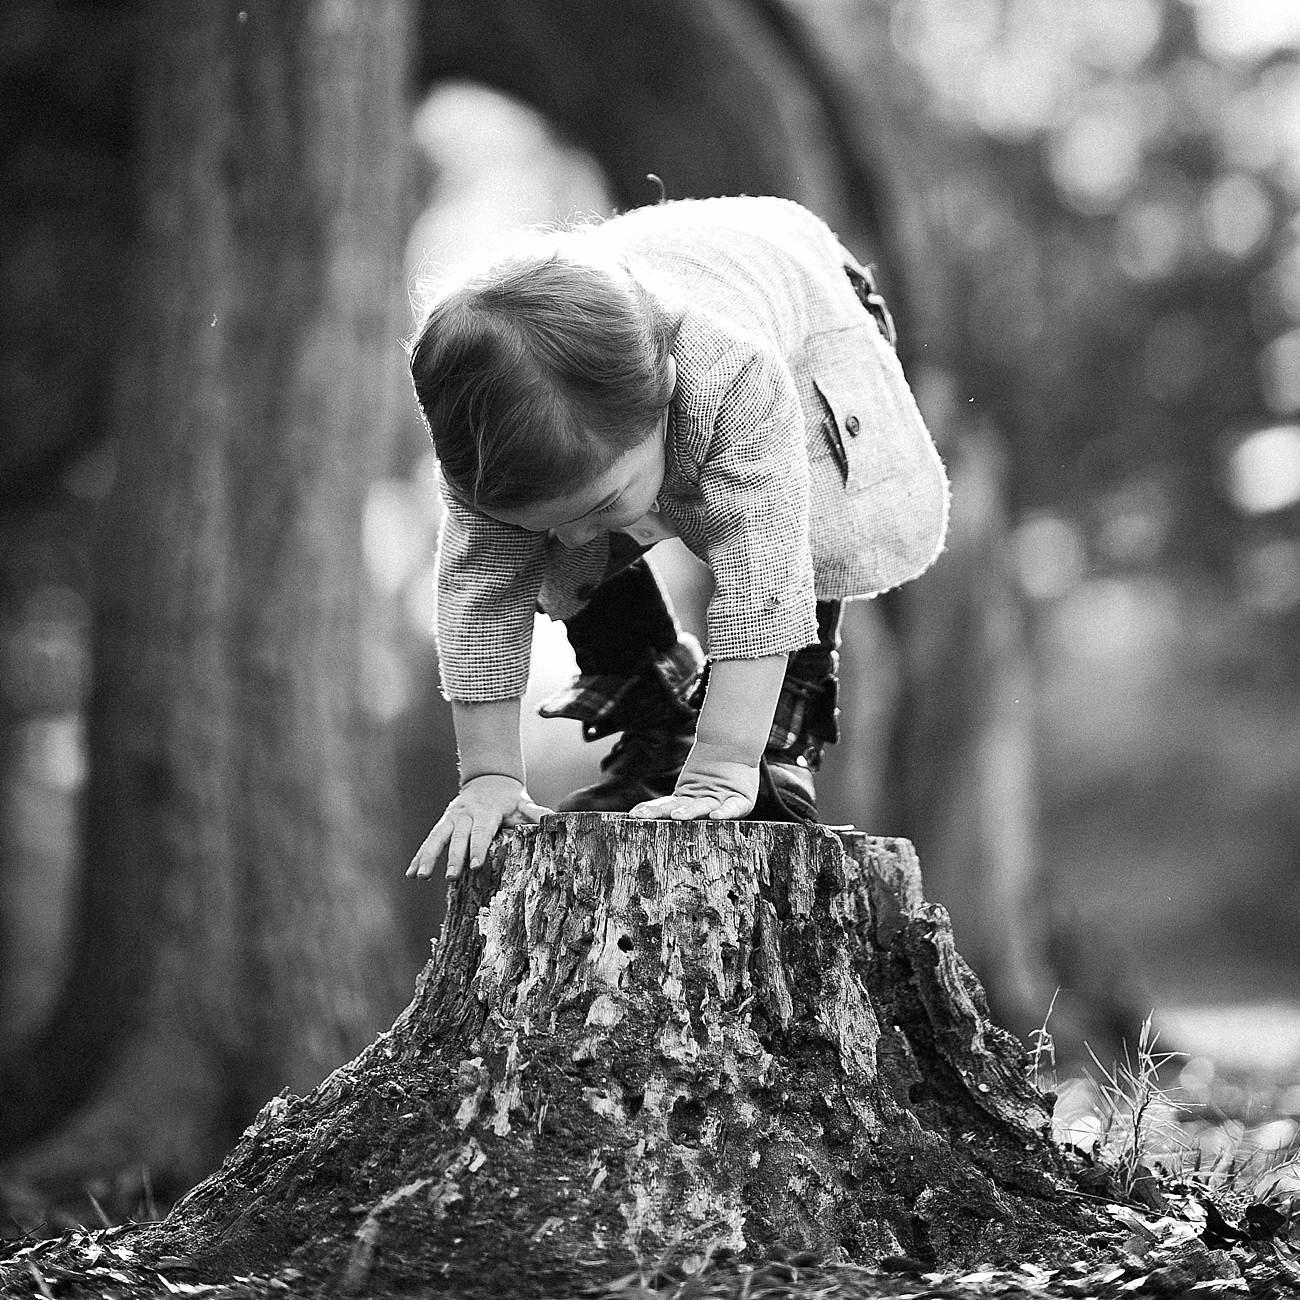 Little boy climbs on a stump at Westminster Park, Rock Hill, SC